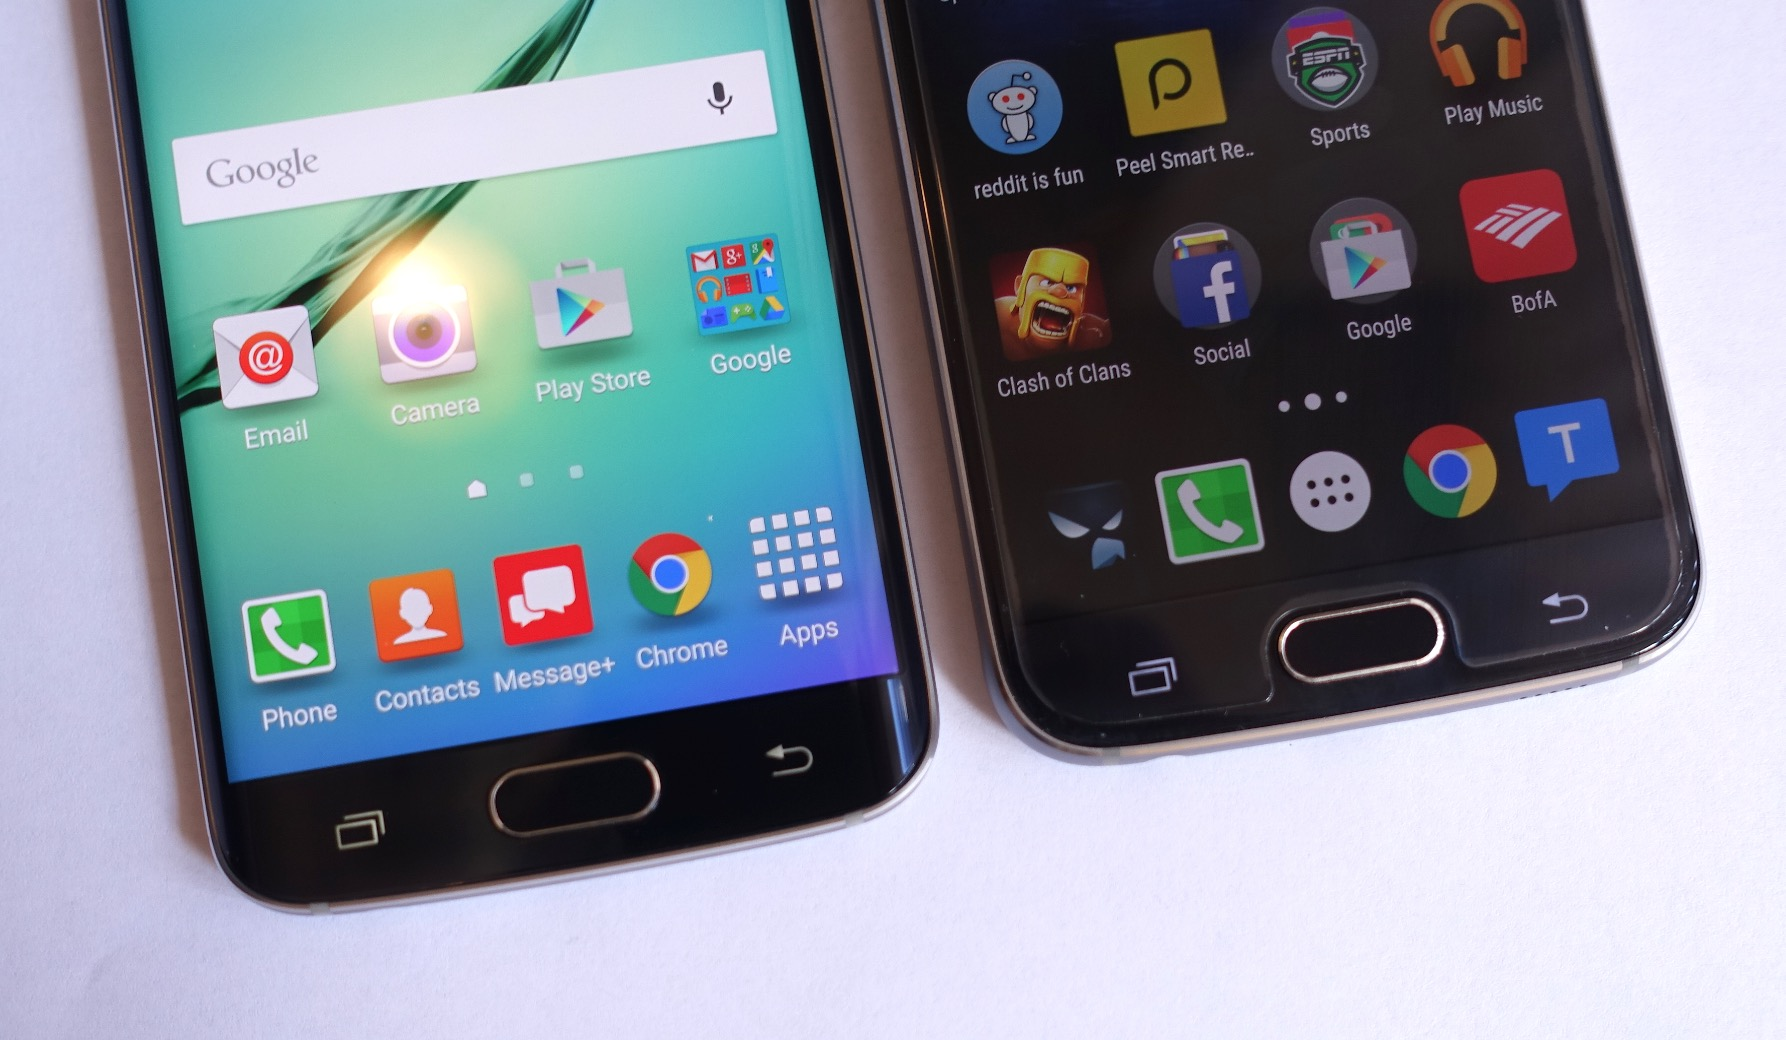 How to Turn Off or Adjust Galaxy S6 Button Lights